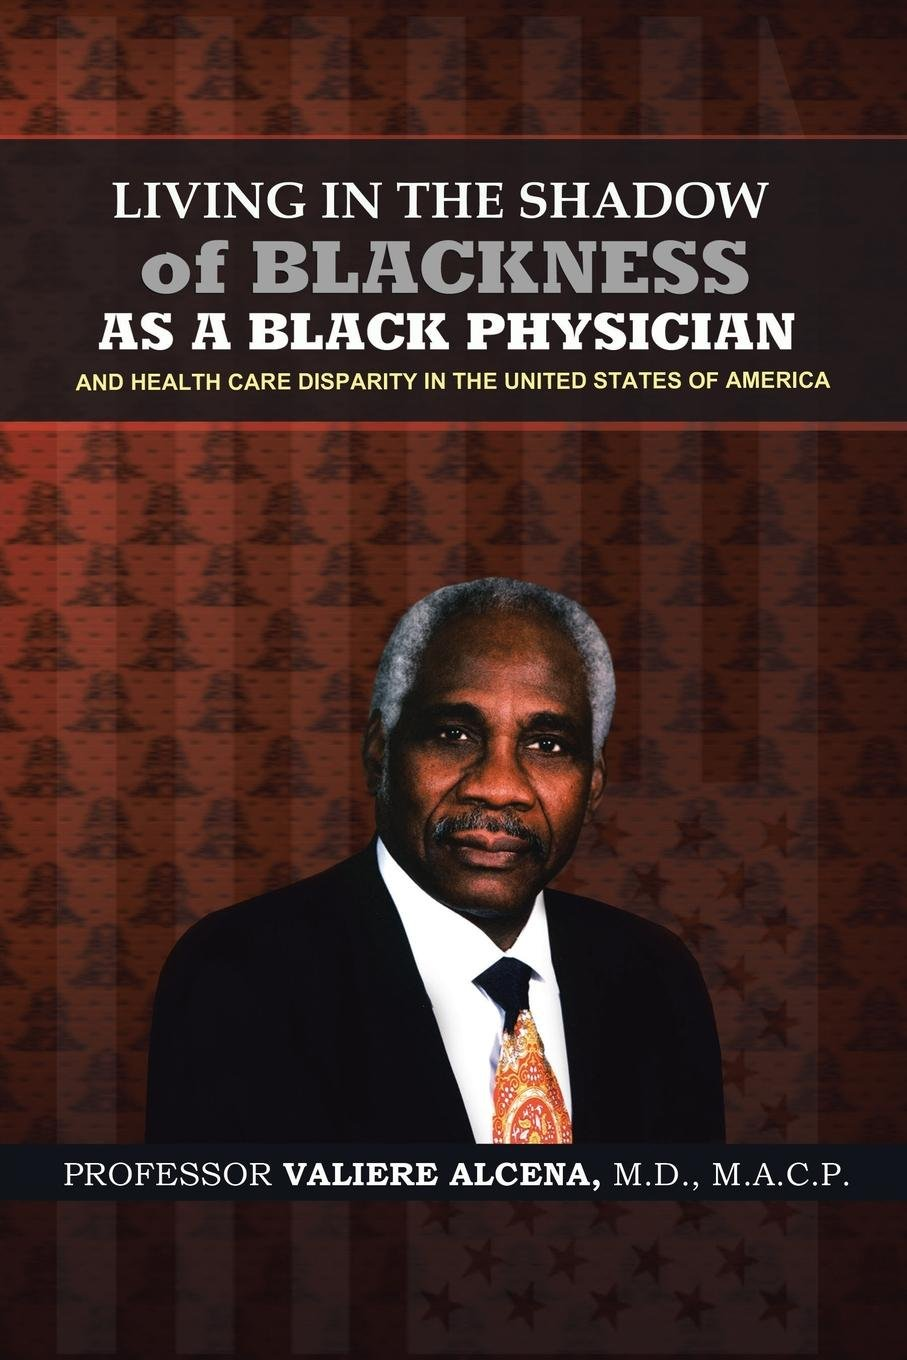 Living in the Shadow of Blackness as a Black Physician and Healthcare Disparity in the United States of America pdf